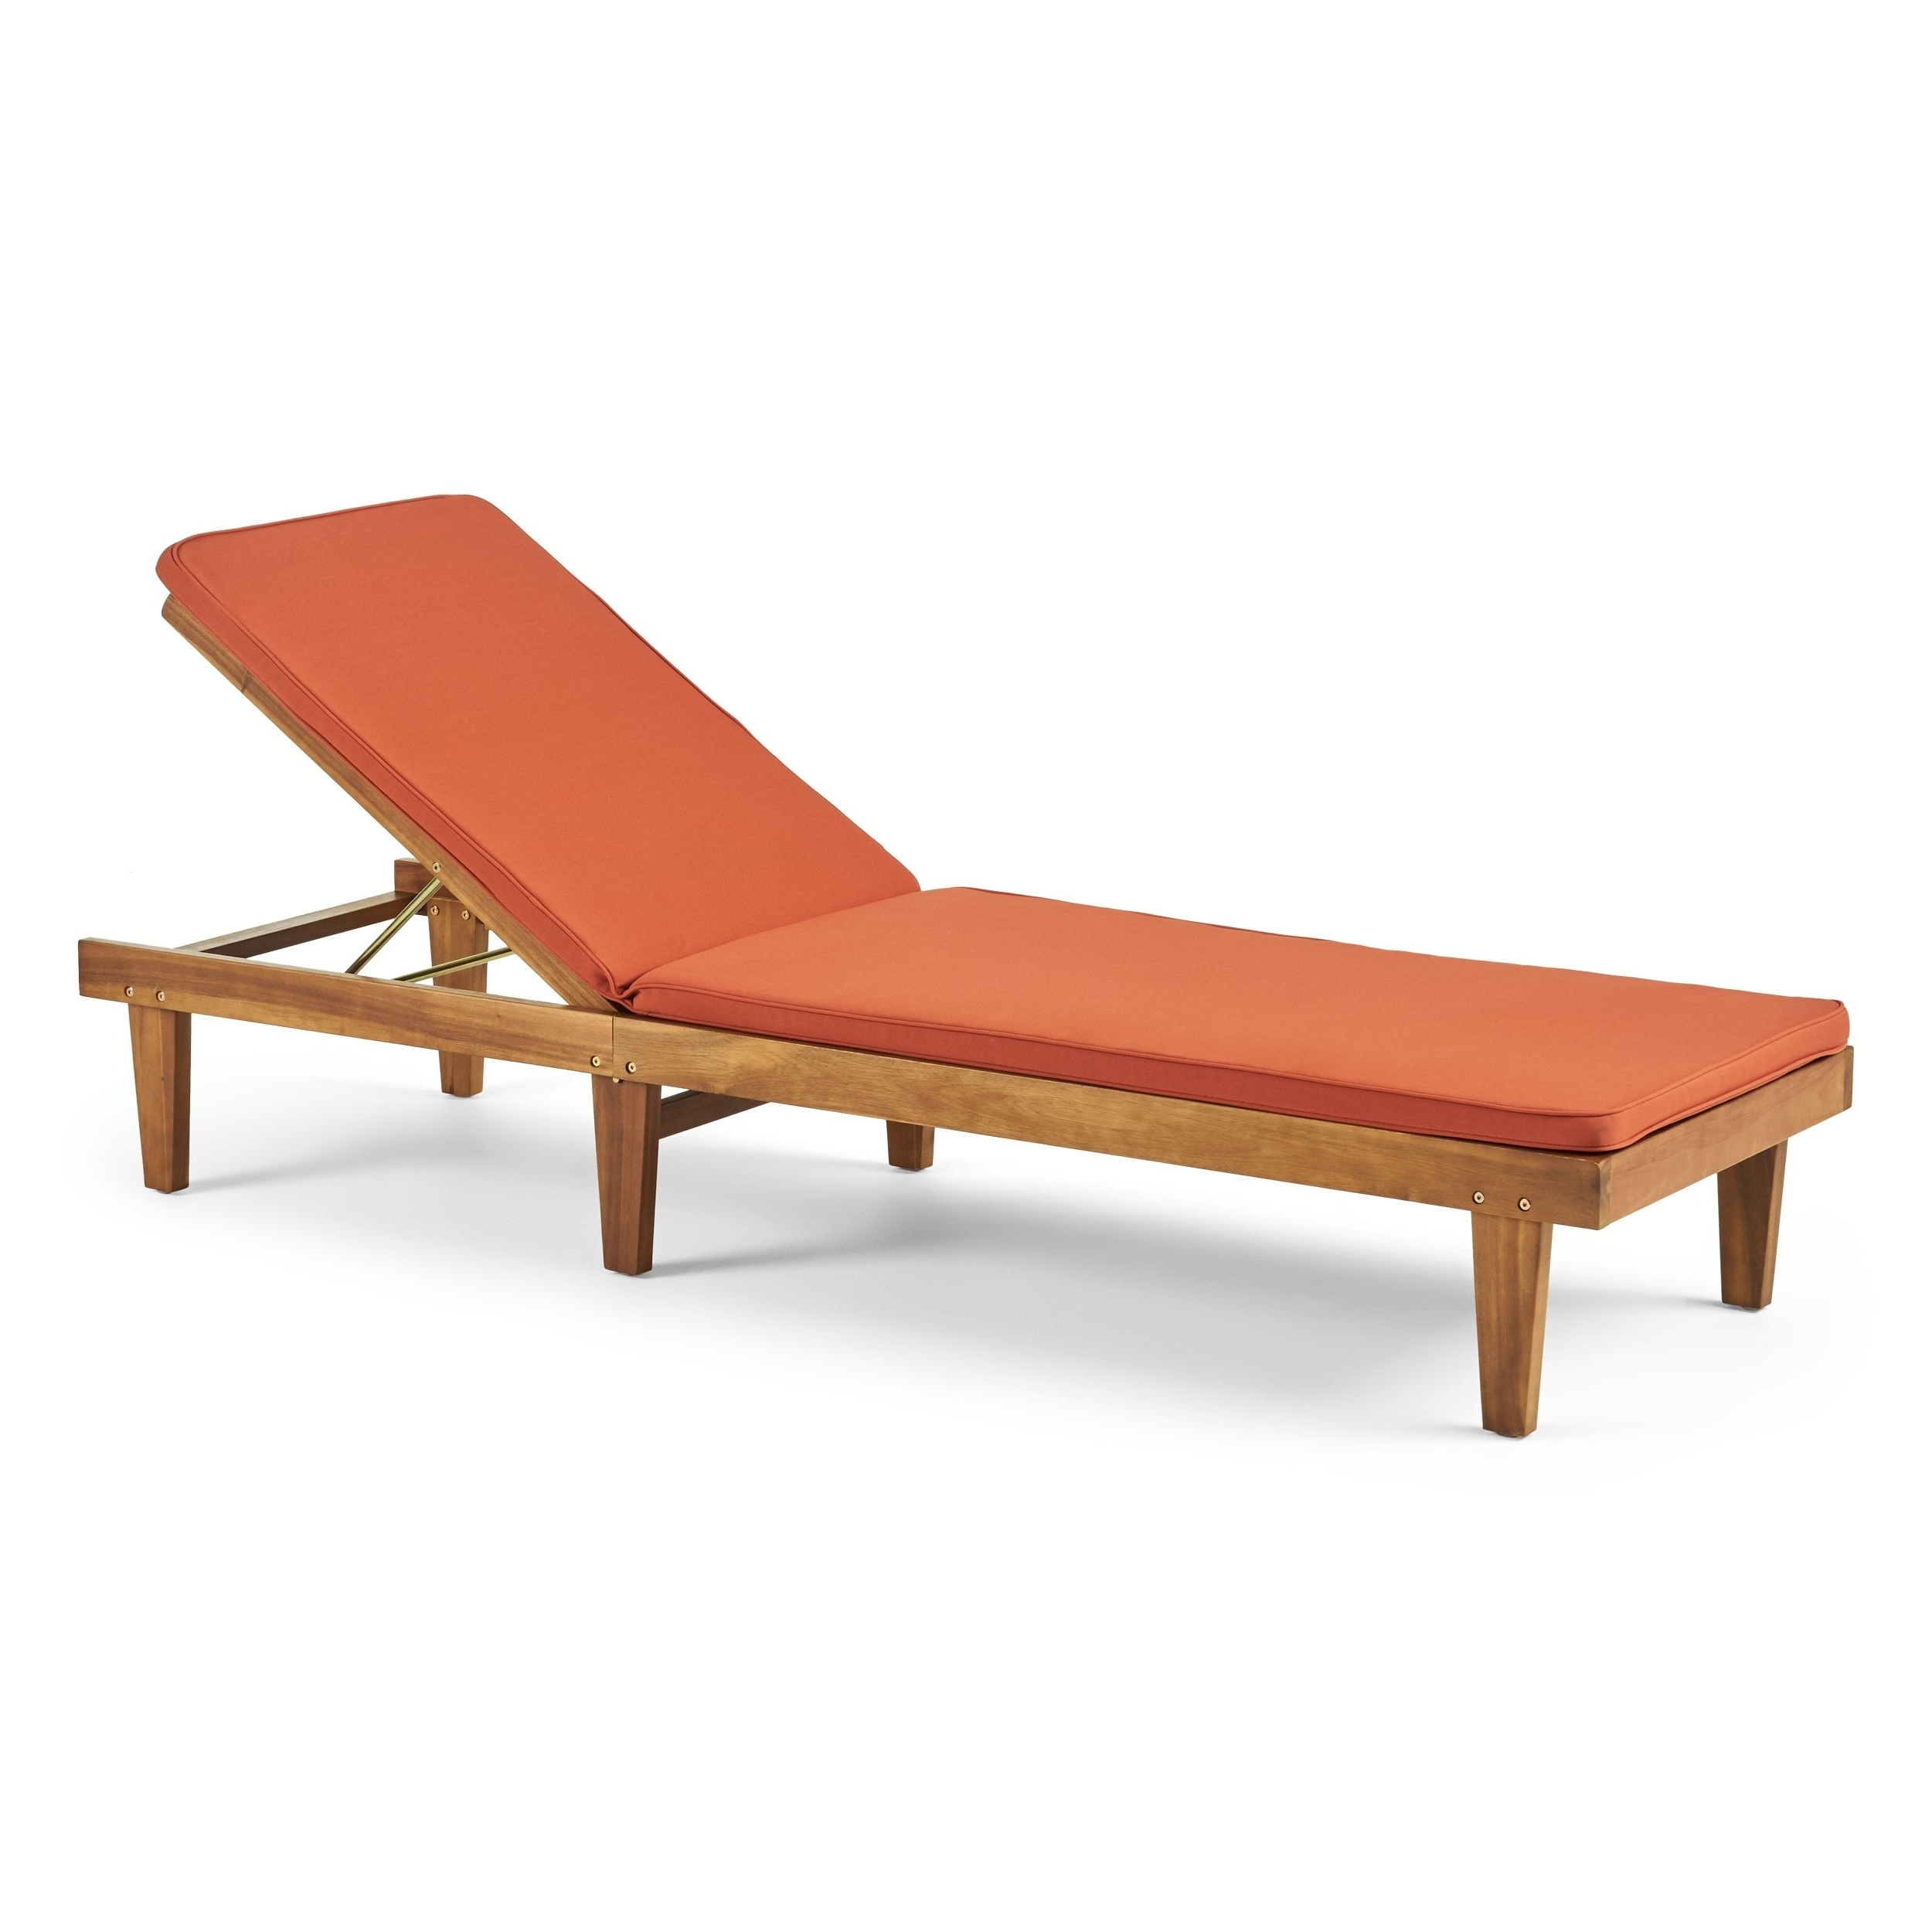 Eucalyptus Teak Finish Outdoor Chaise Loungers With Cushion Inside Fashionable Nadine Outdoor Acacia Wood Chaise Lounge And Cushion Setchristopher Knight Home (View 3 of 25)